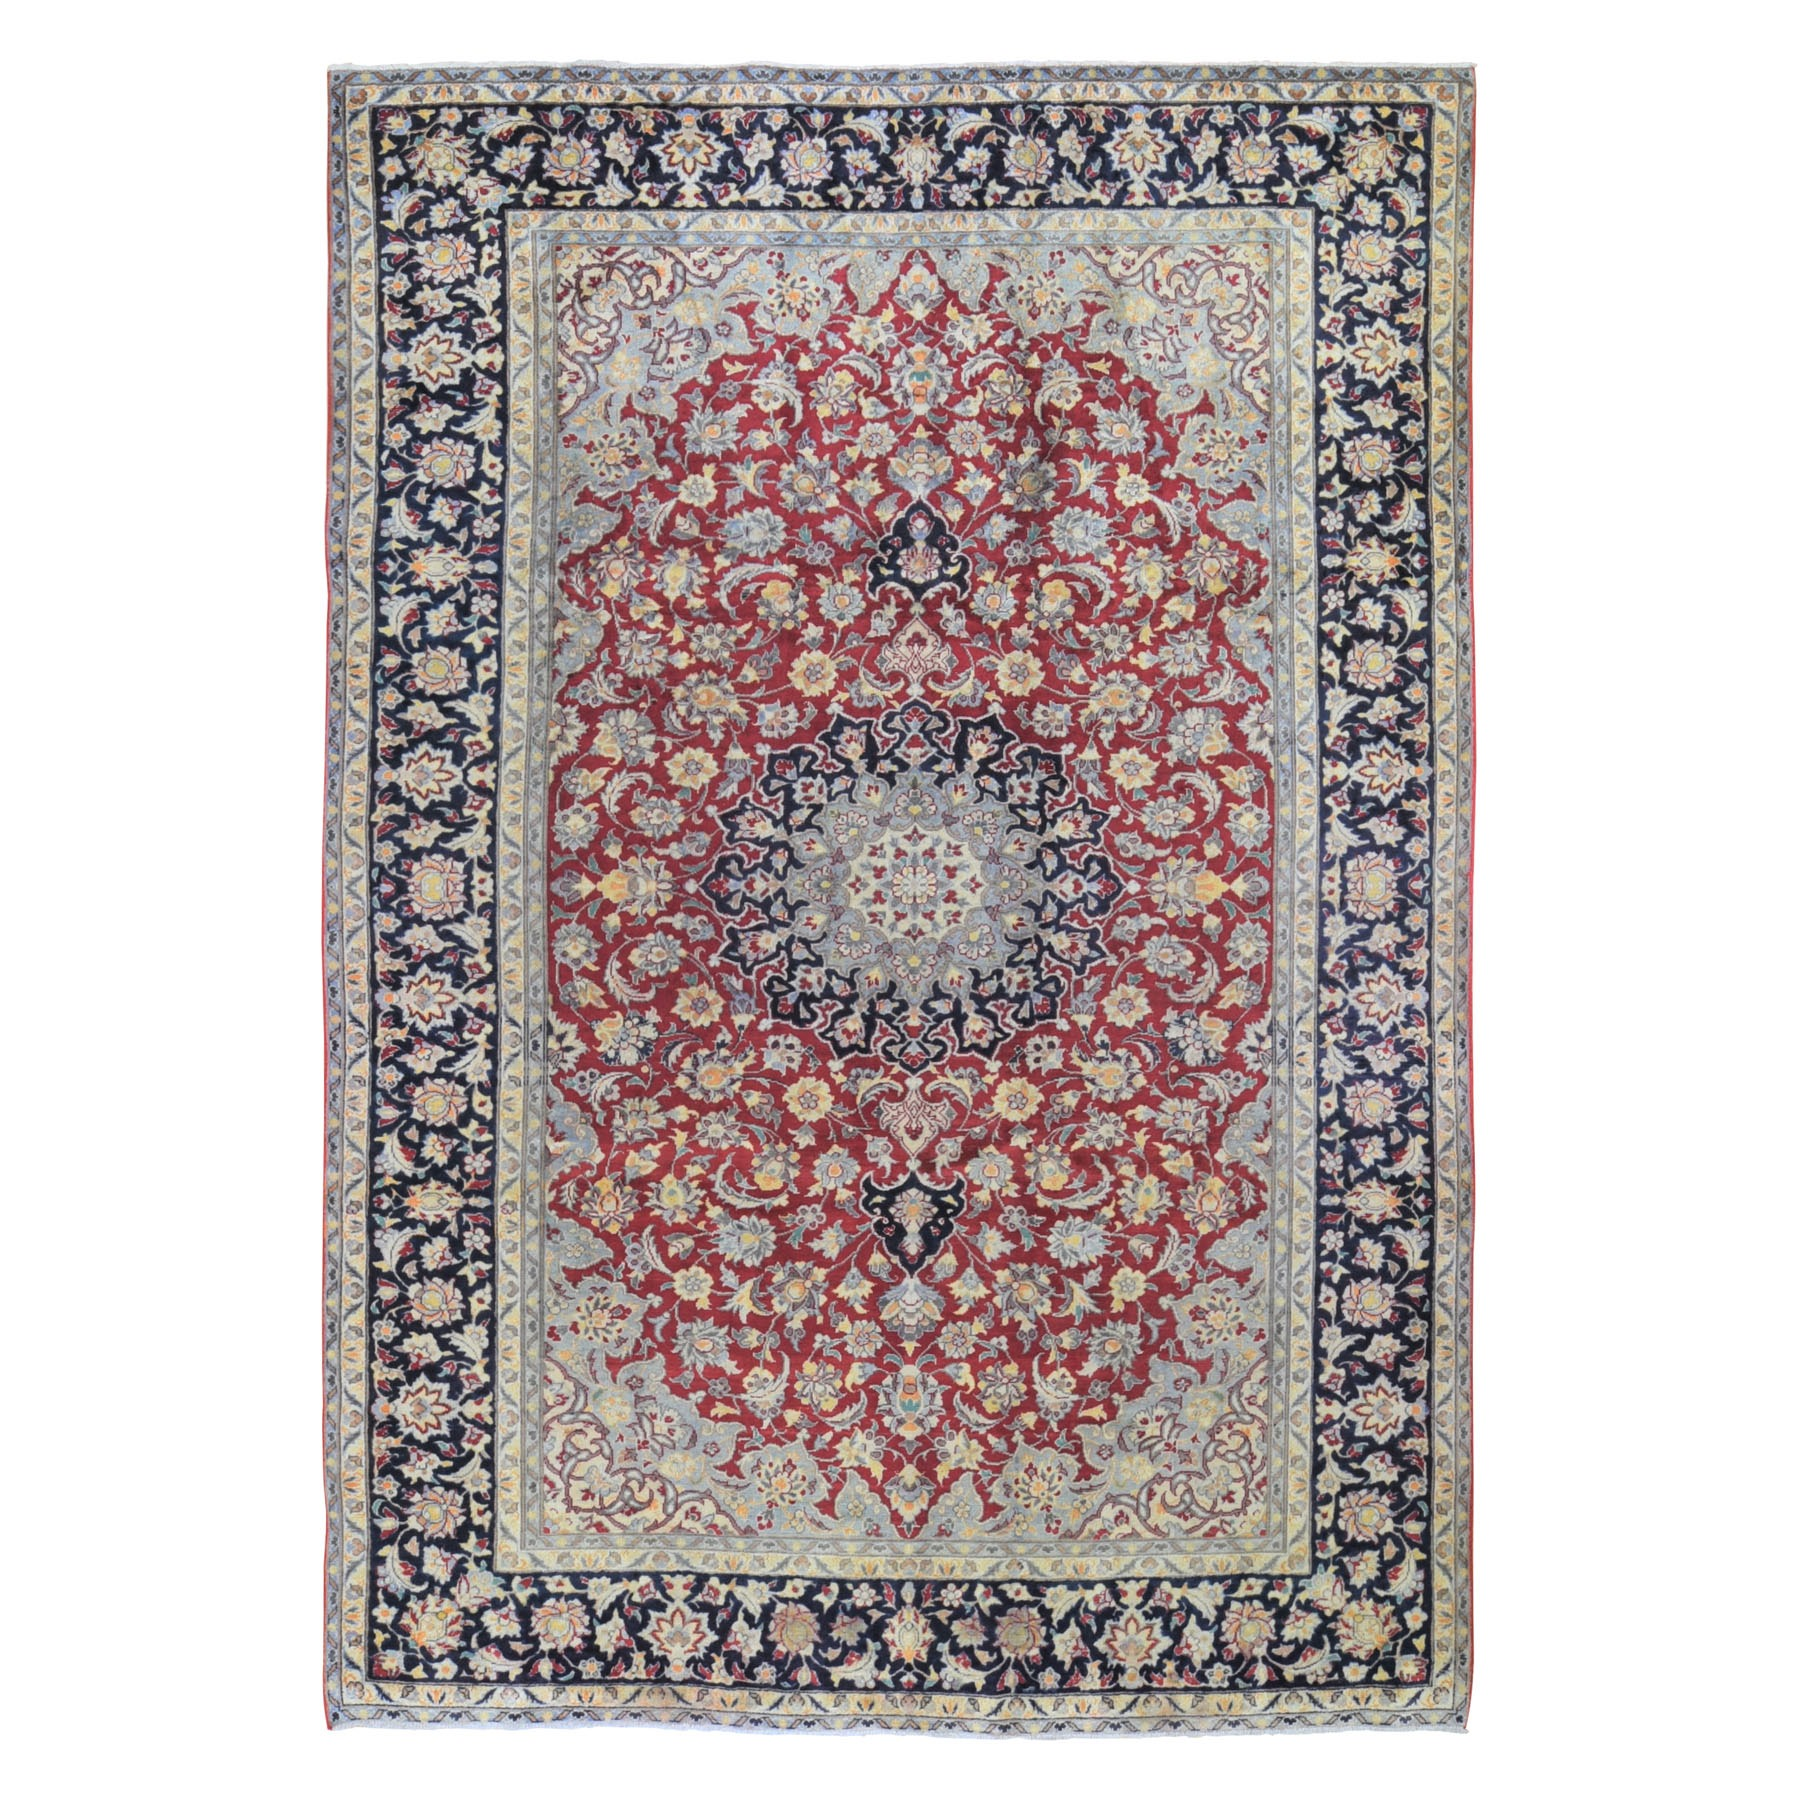 "7'10""x12'1"" Red Semi Antique Isfahan Clean Good Condition Pure Wool Hand Woven Oriental Rug"